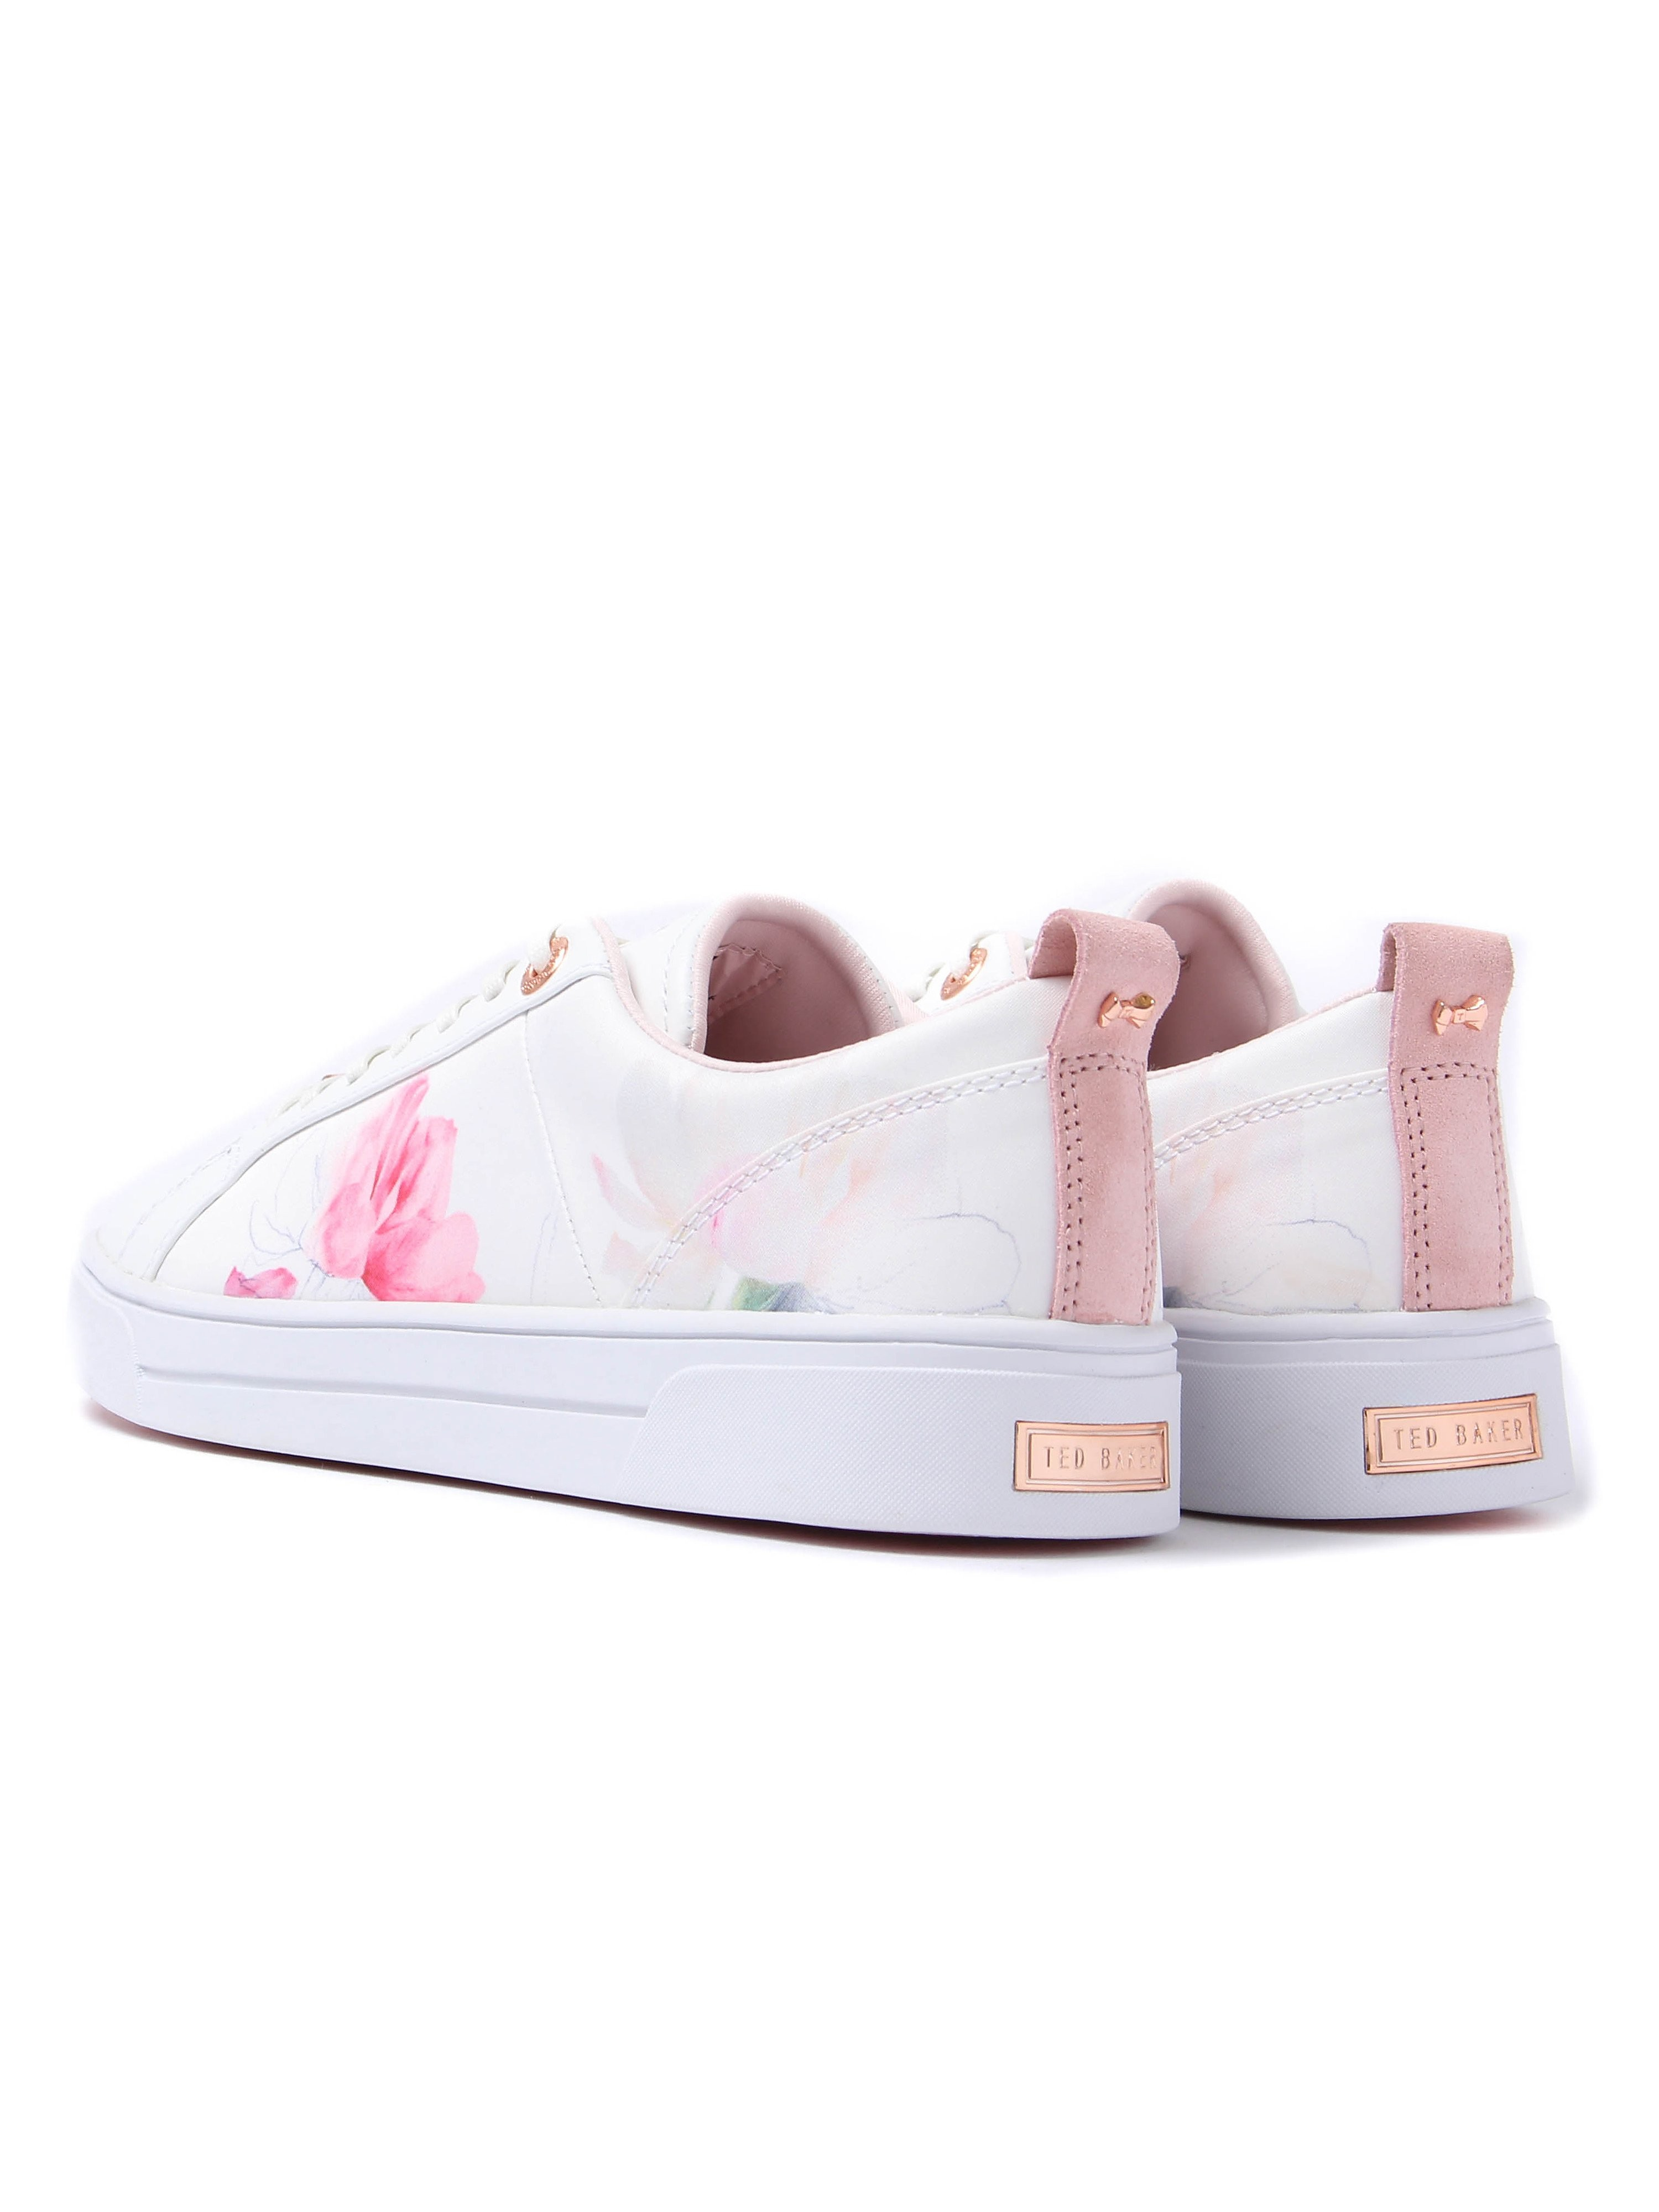 Ted Baker Women's Orulo Oriental Bloom Lace-Up Trainers - White